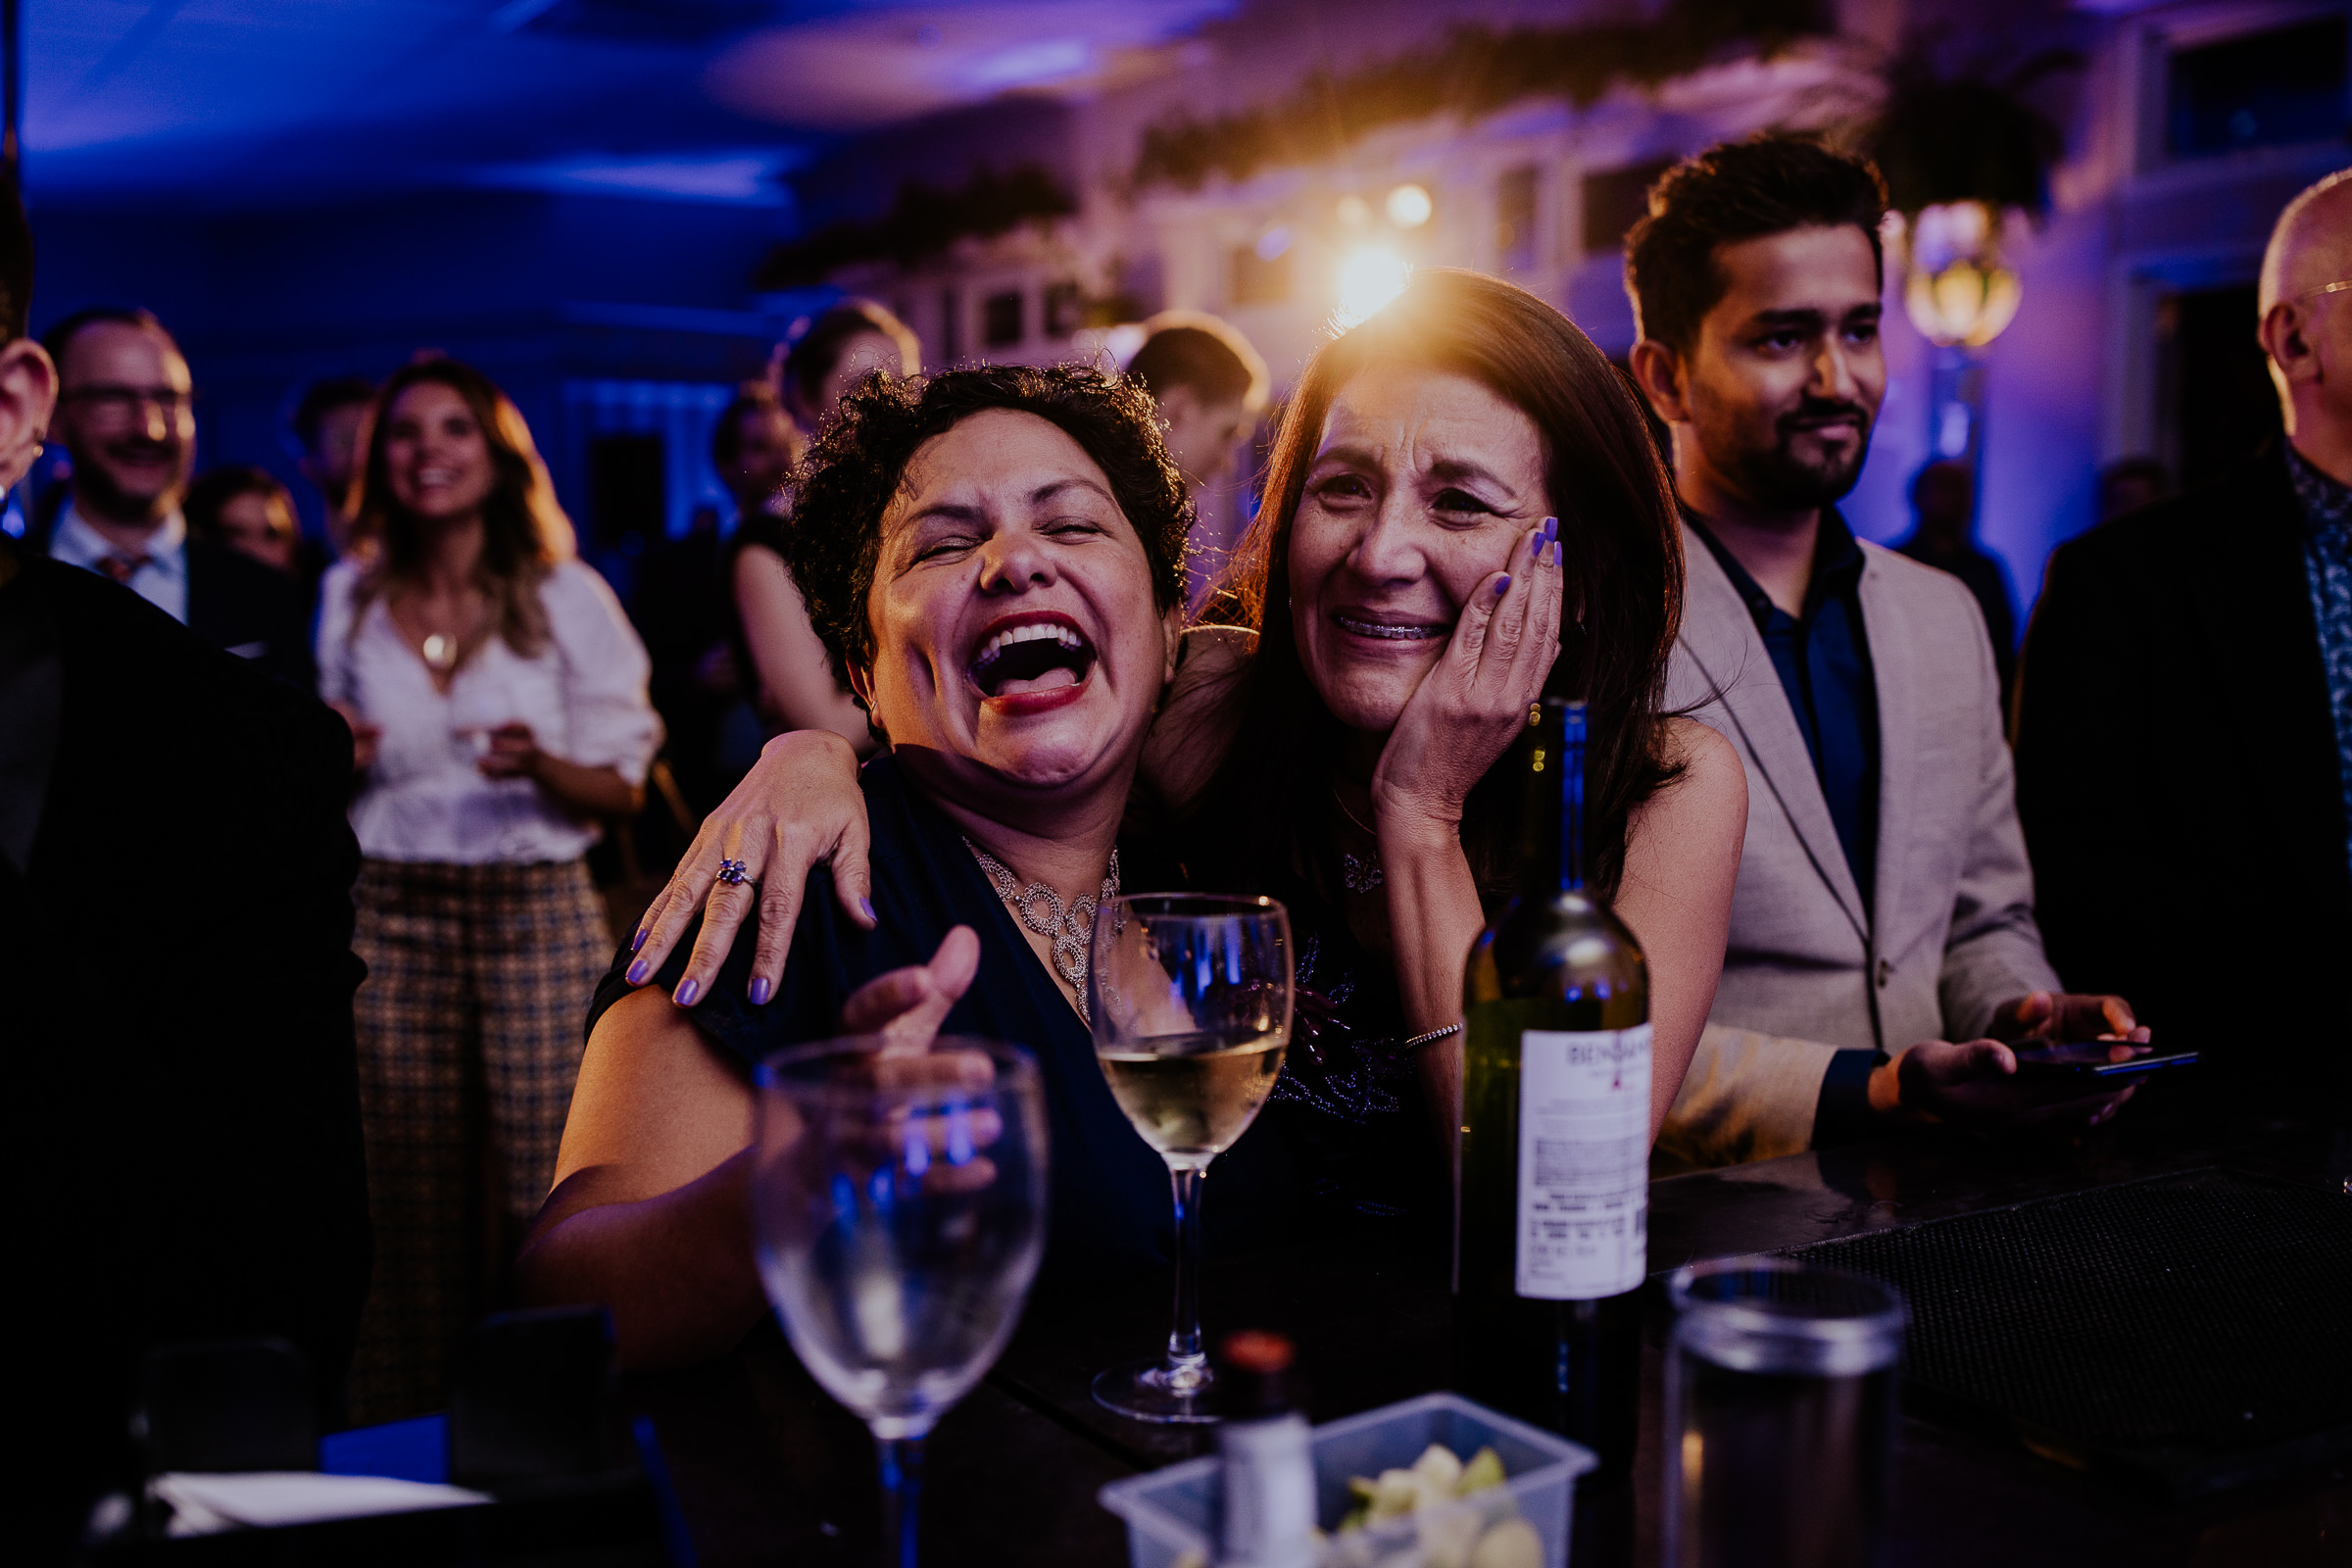 two women smiling while drinking wine at a wedding party